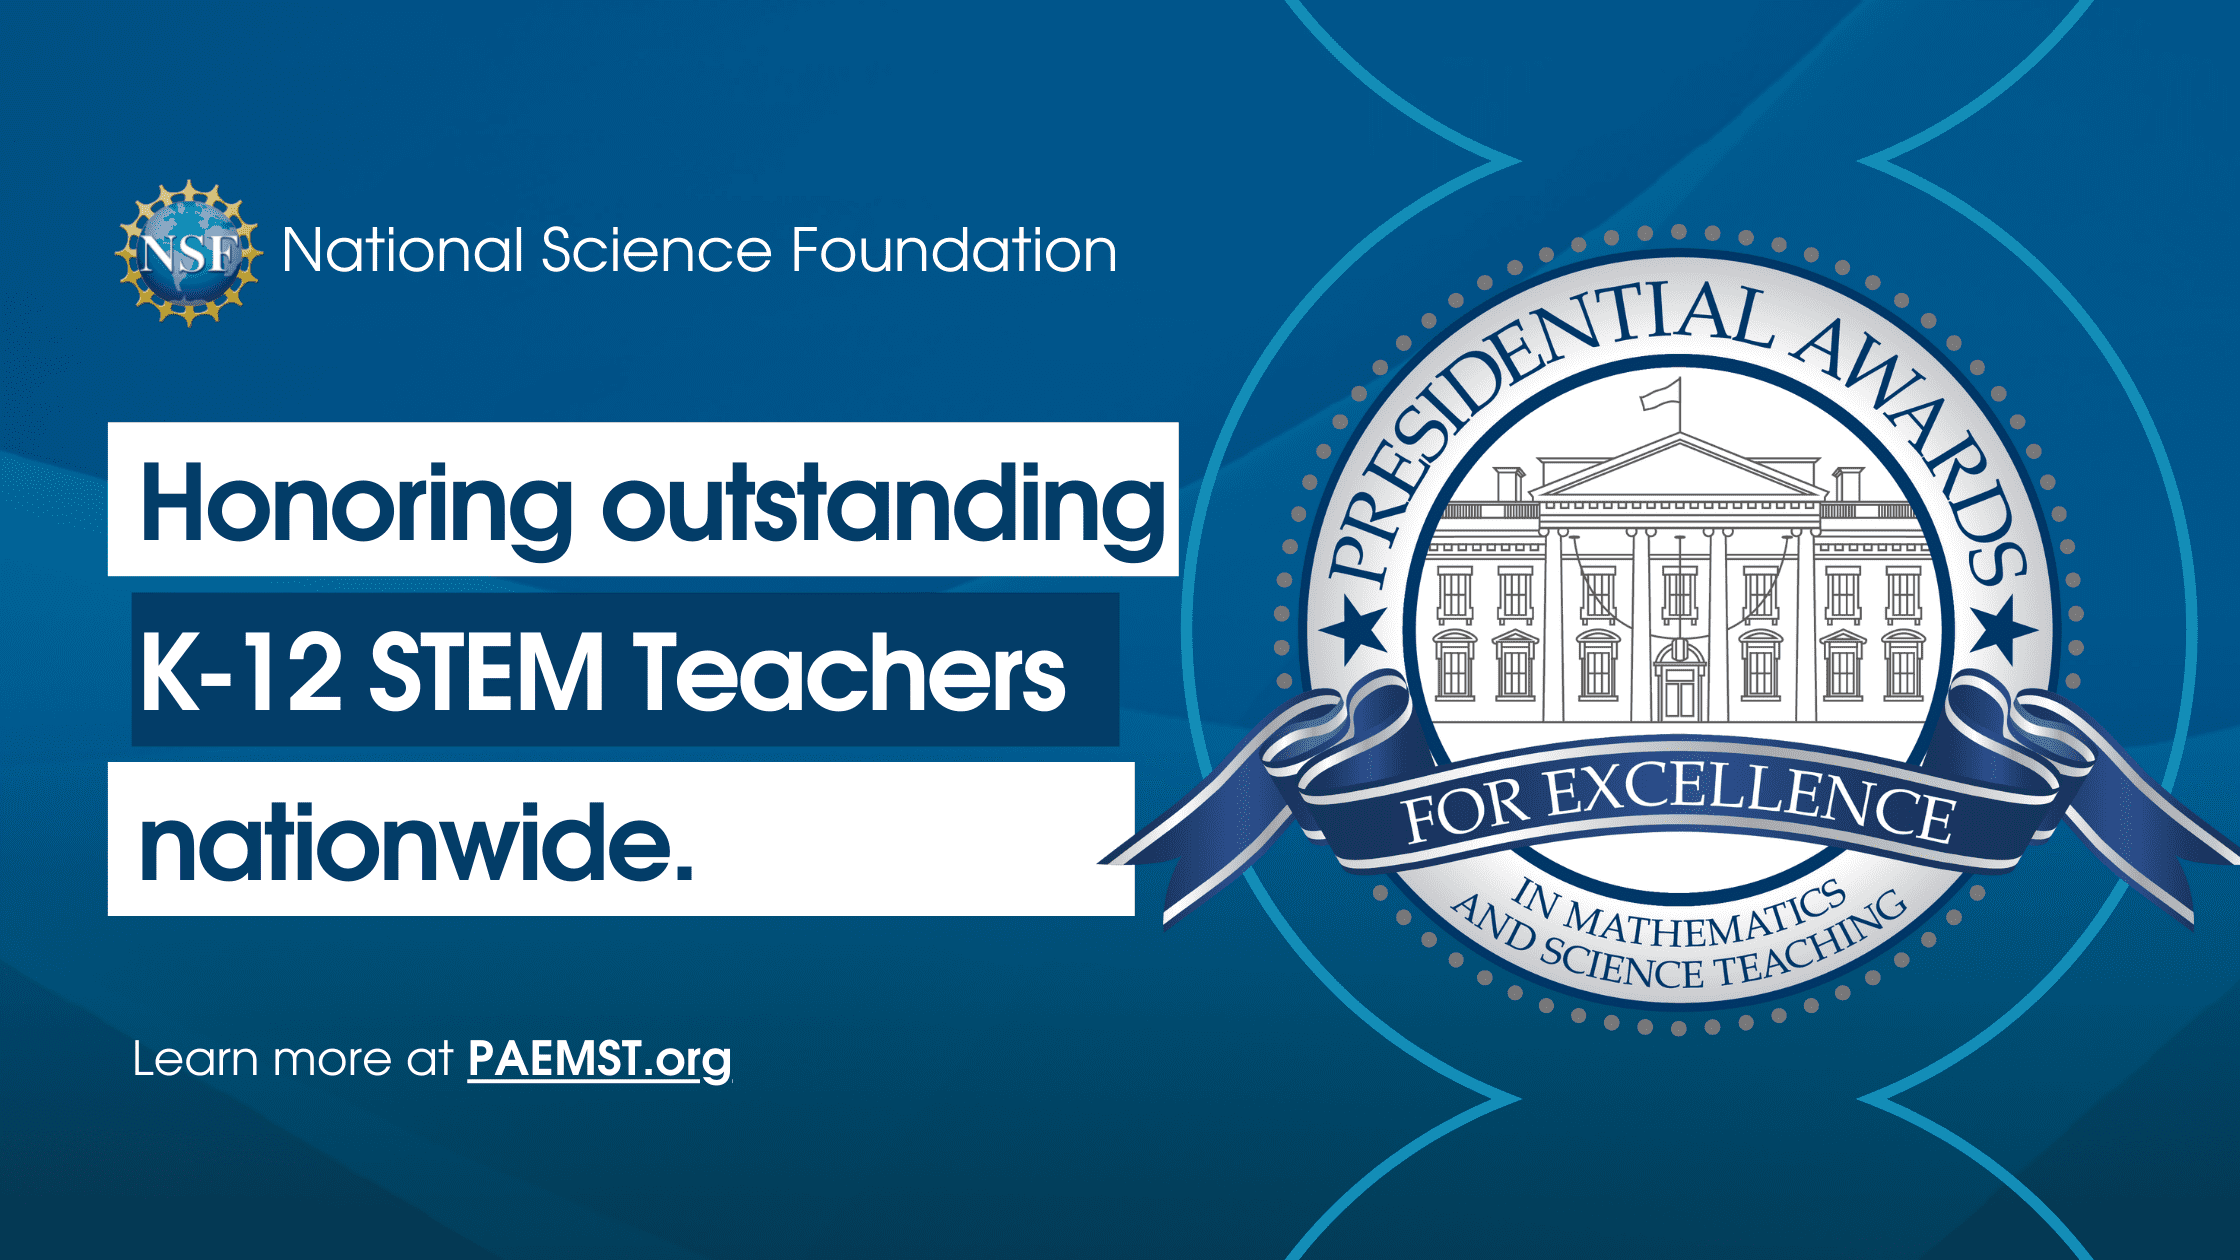 The Presidential Awards for Excellence in Mathematics and Science Teaching Header